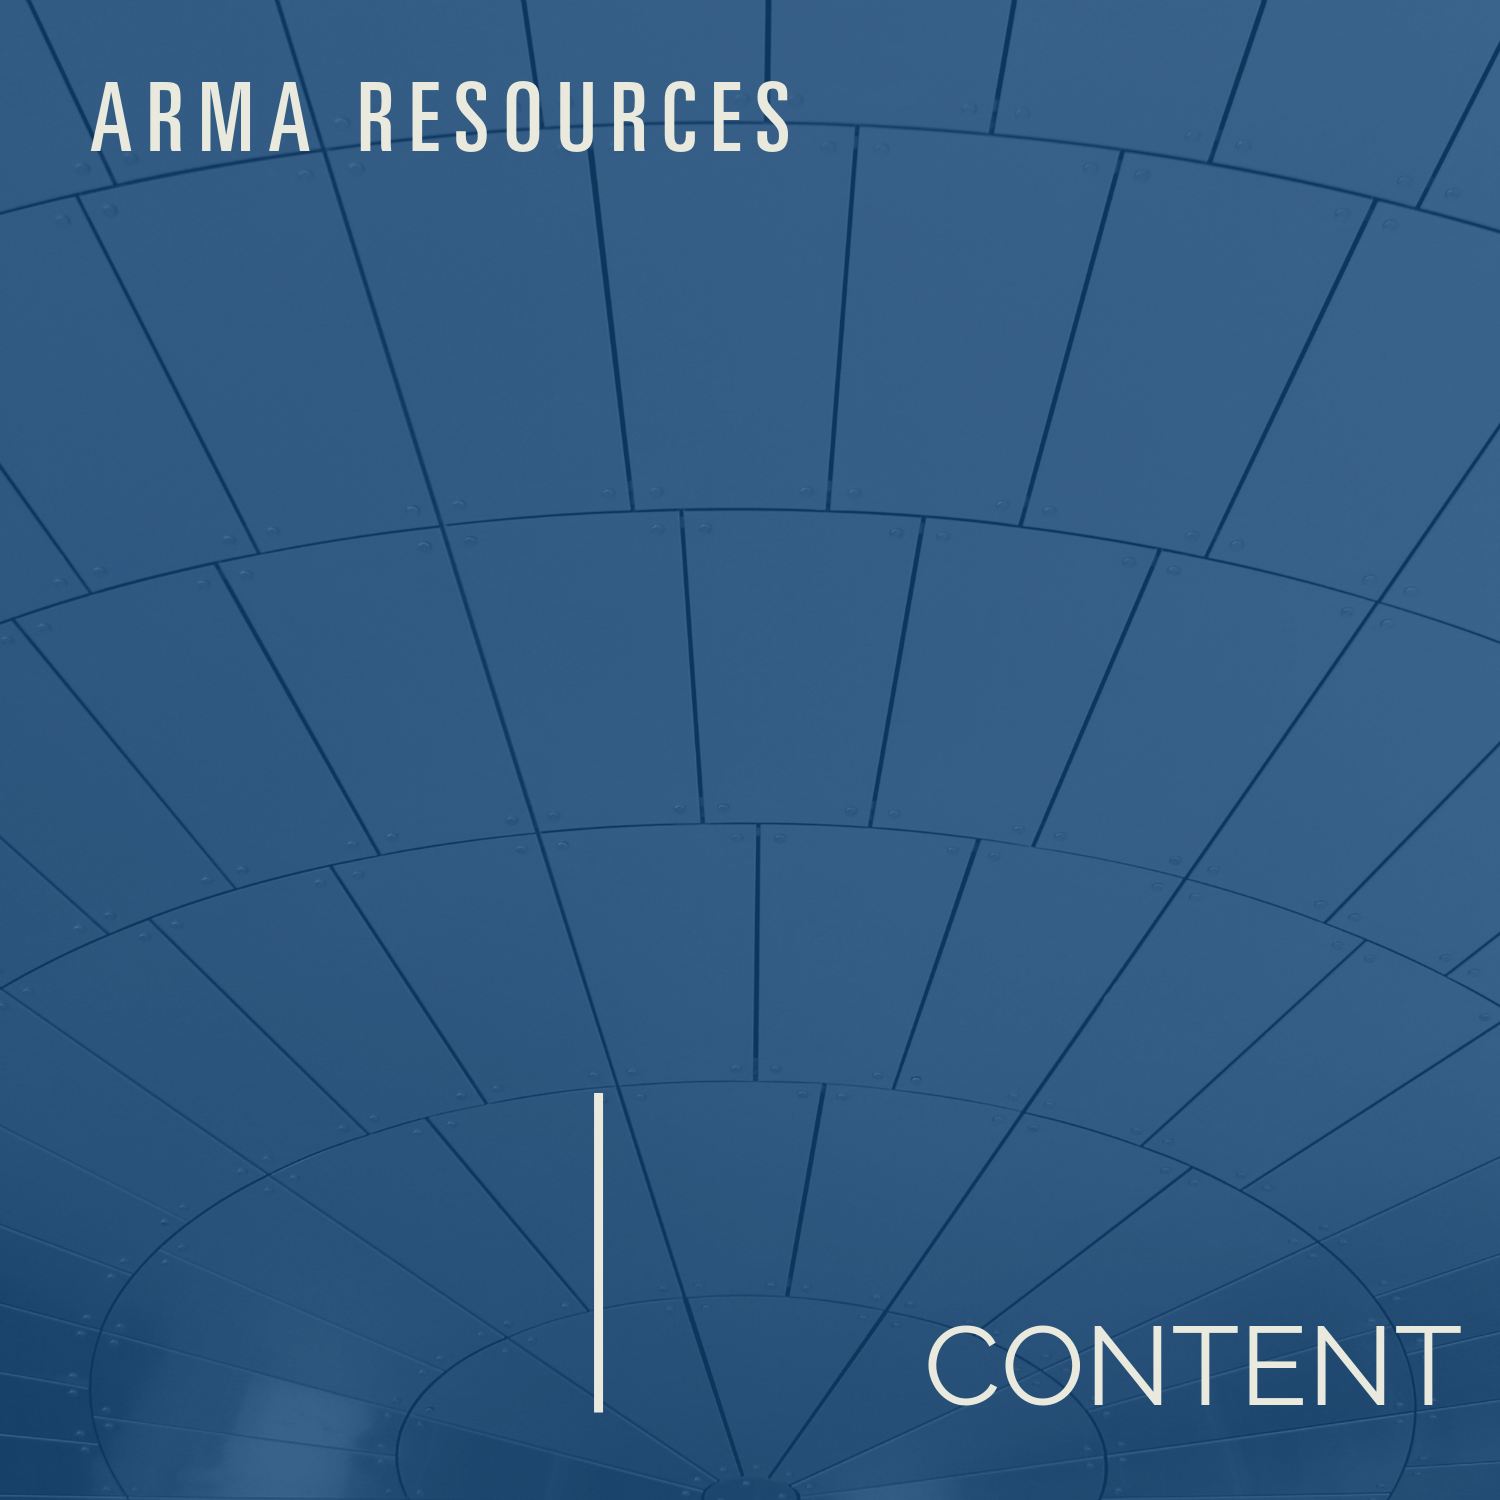 Content-Related Resources